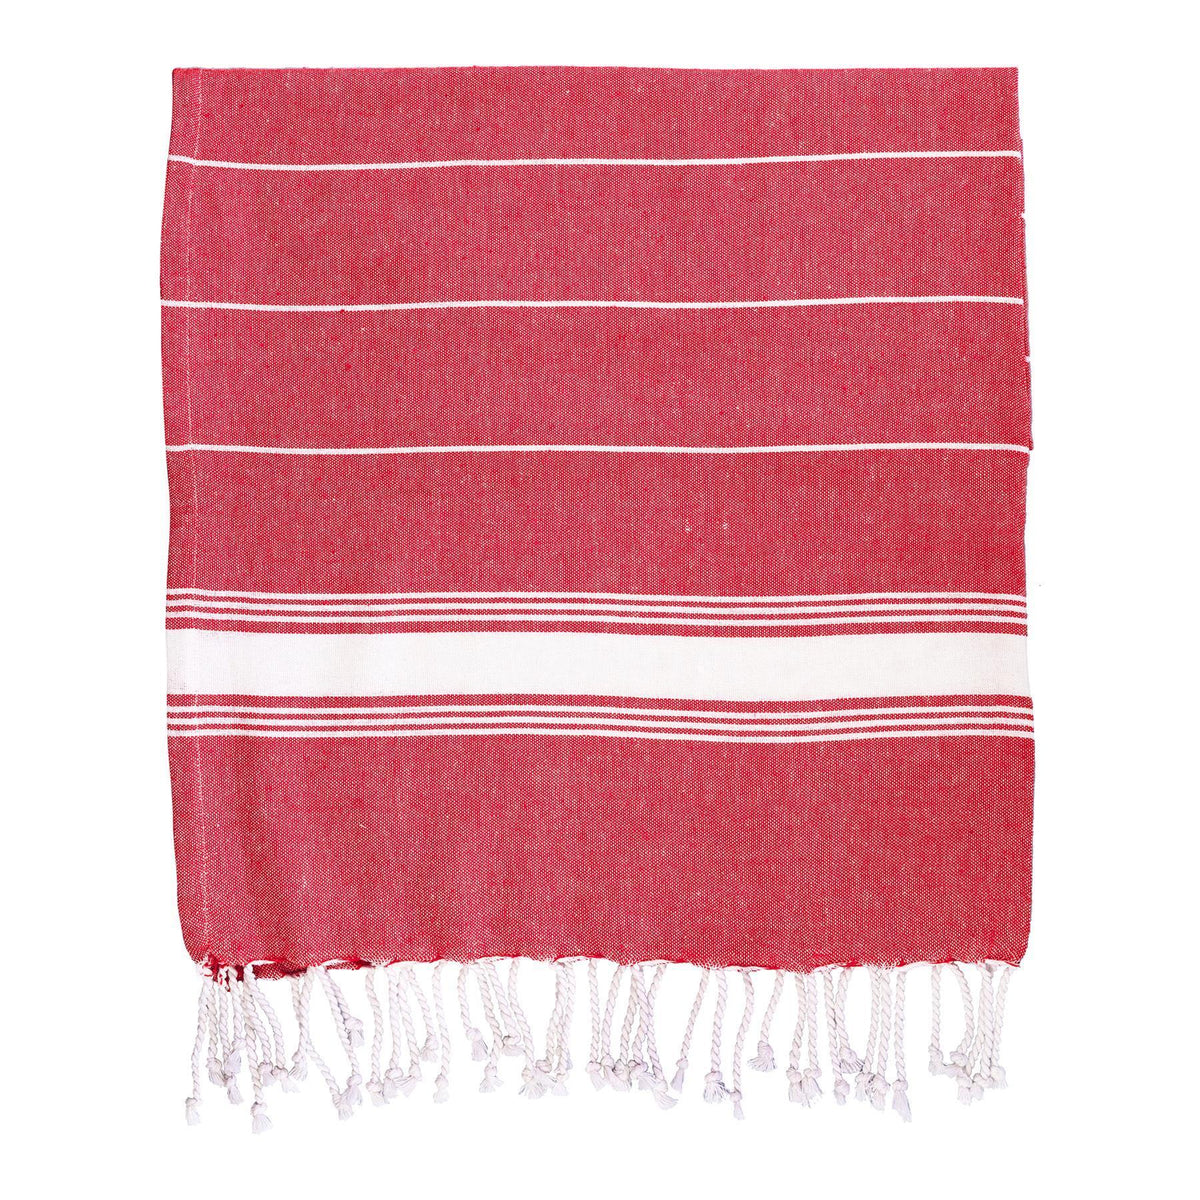 Nicola Spring Turkish Beach Towel - Red